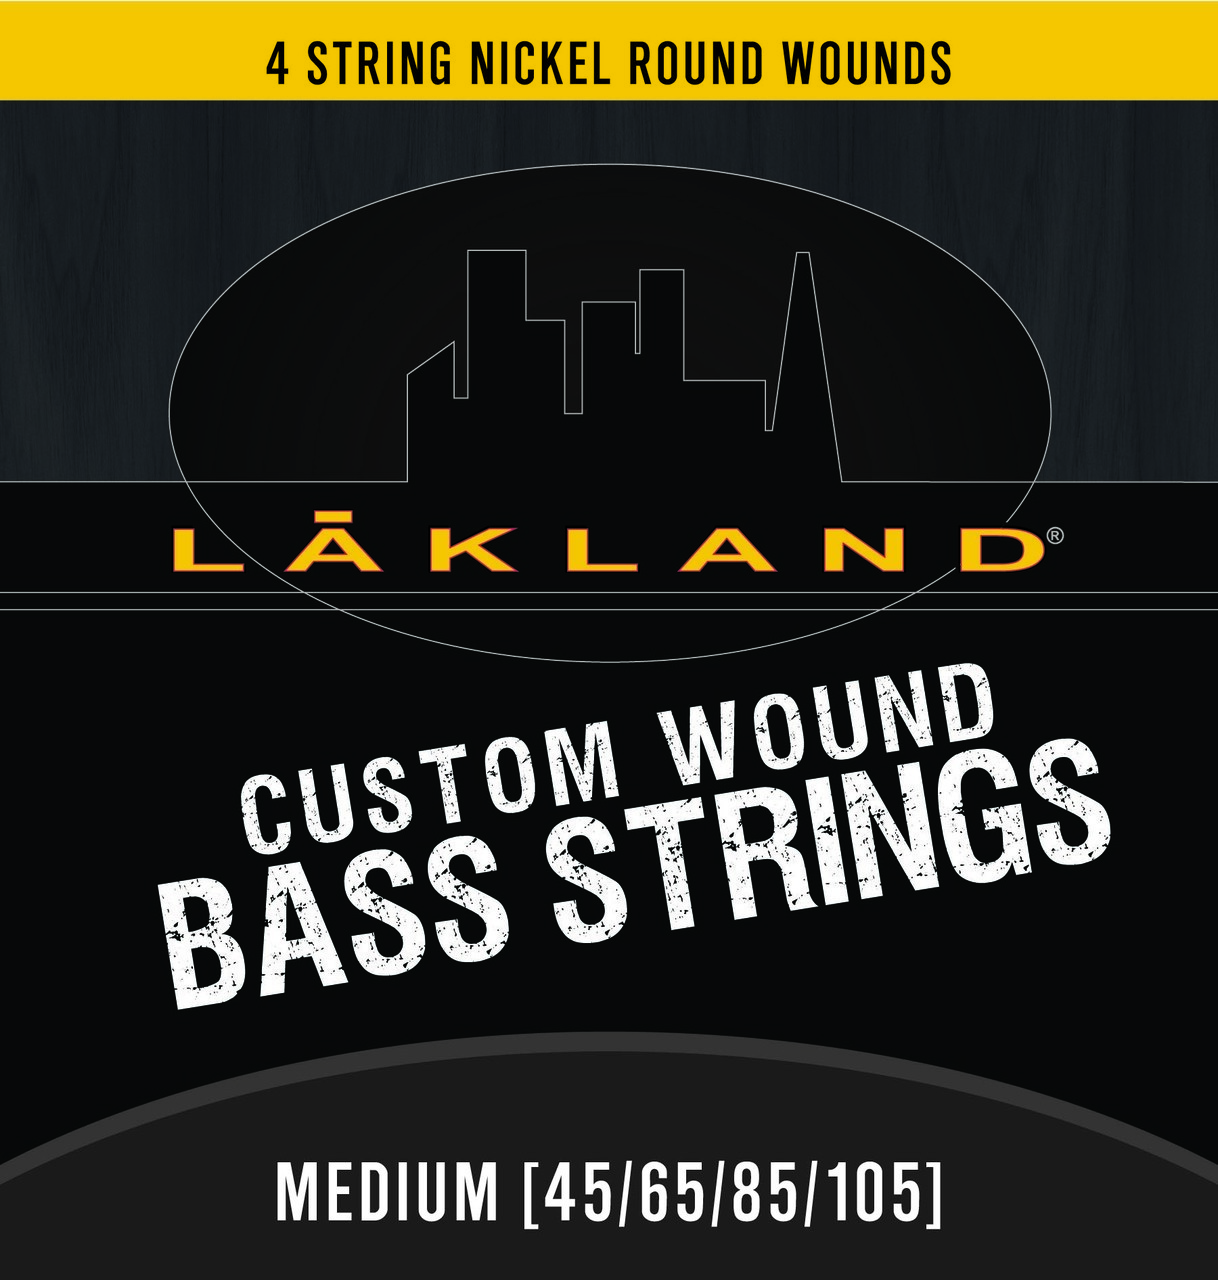 Lakland 4 String Nickel Round Wound Medium Gauge Bass Strings